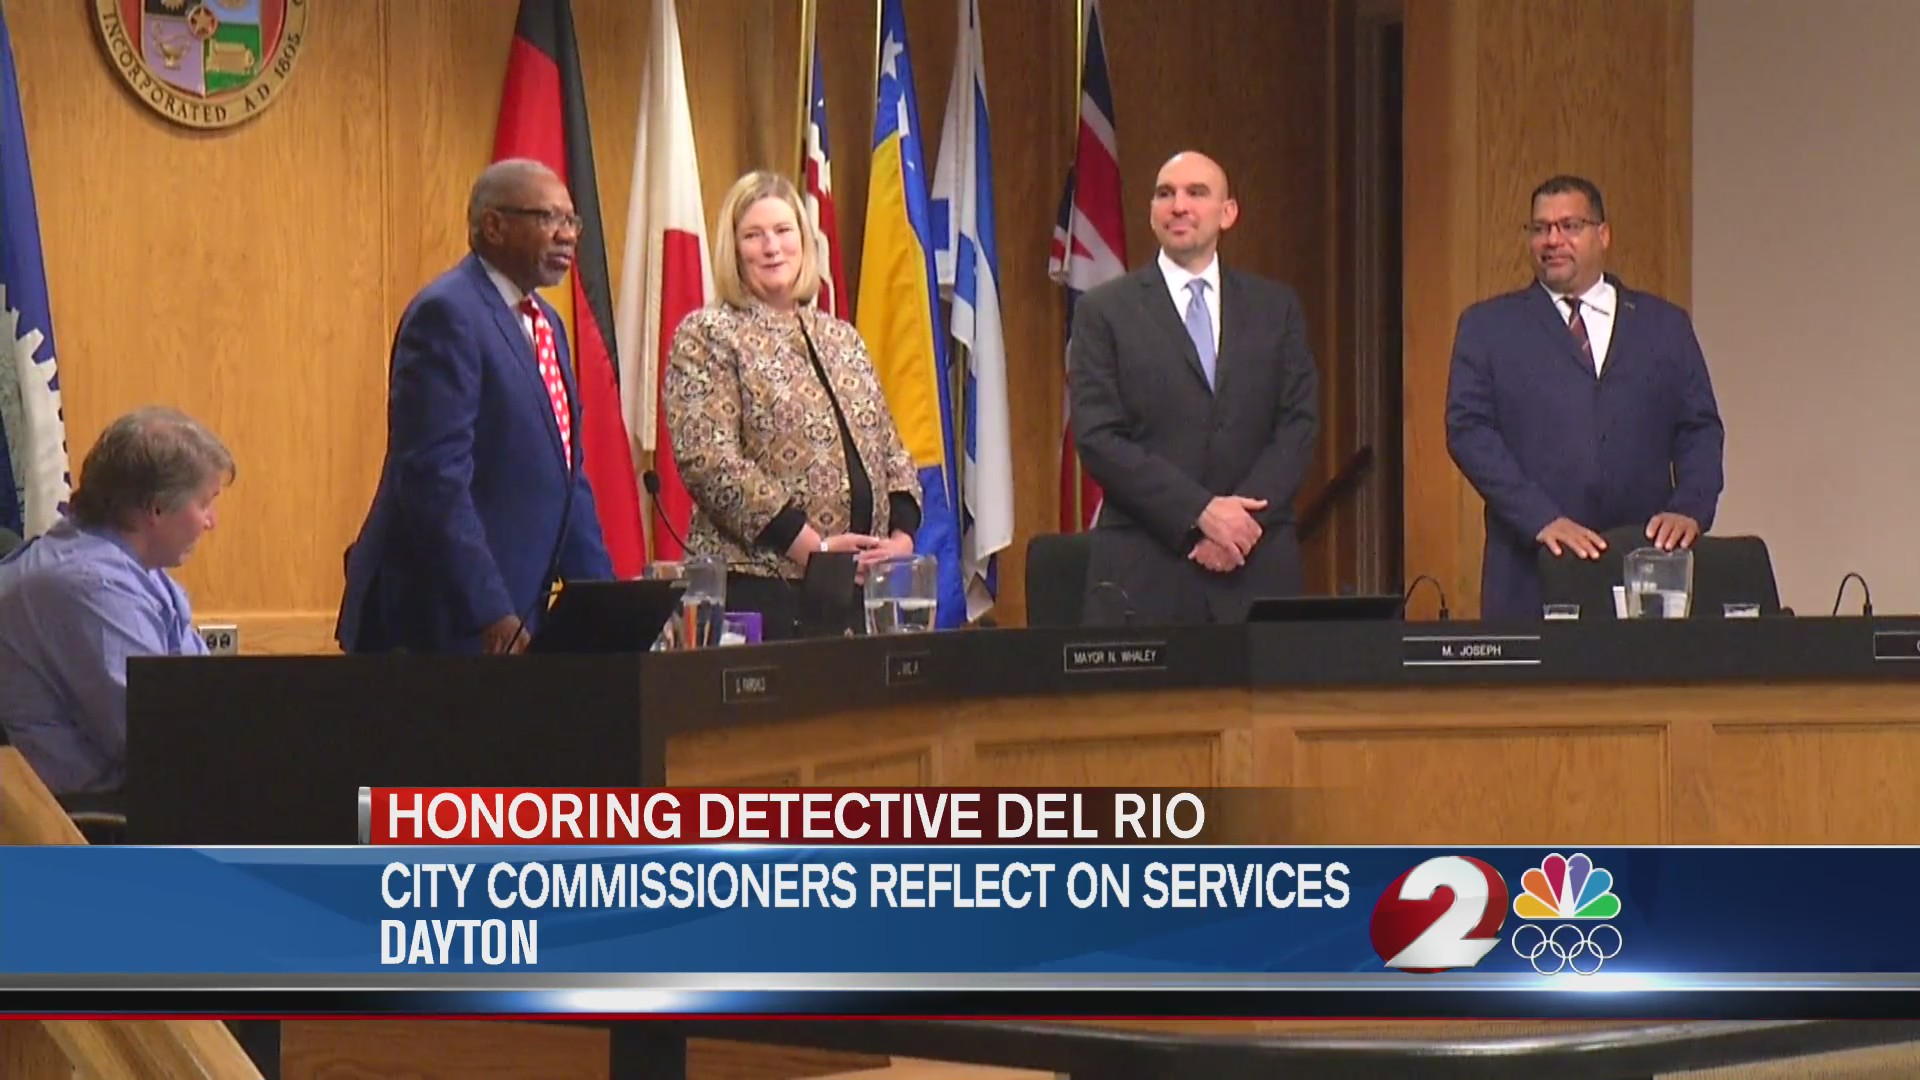 City commissioners reflect on Det. Del Rio services